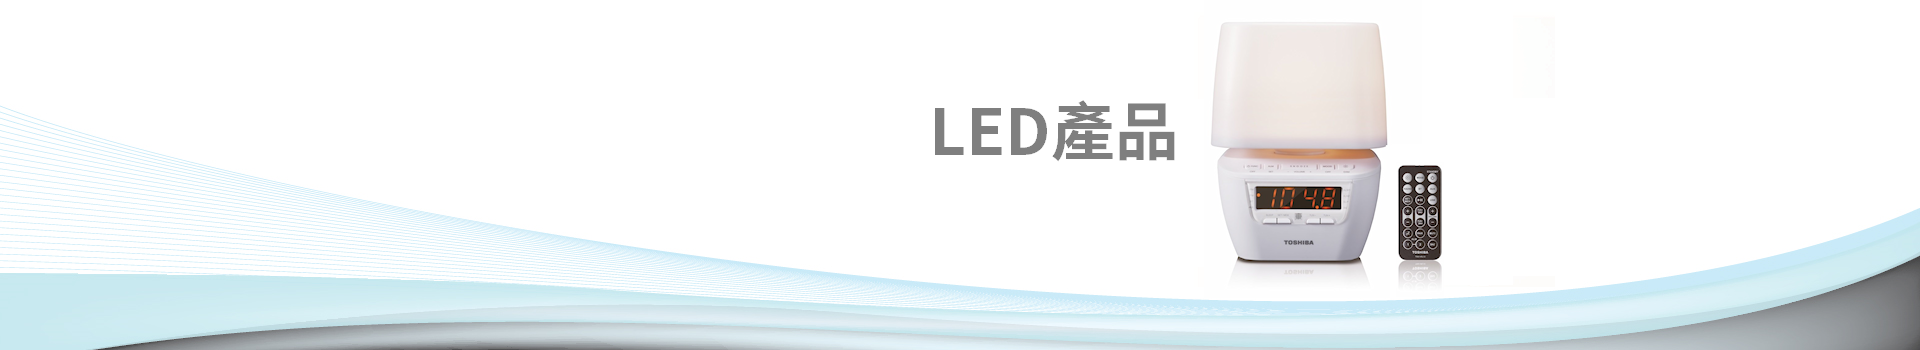 led products banner